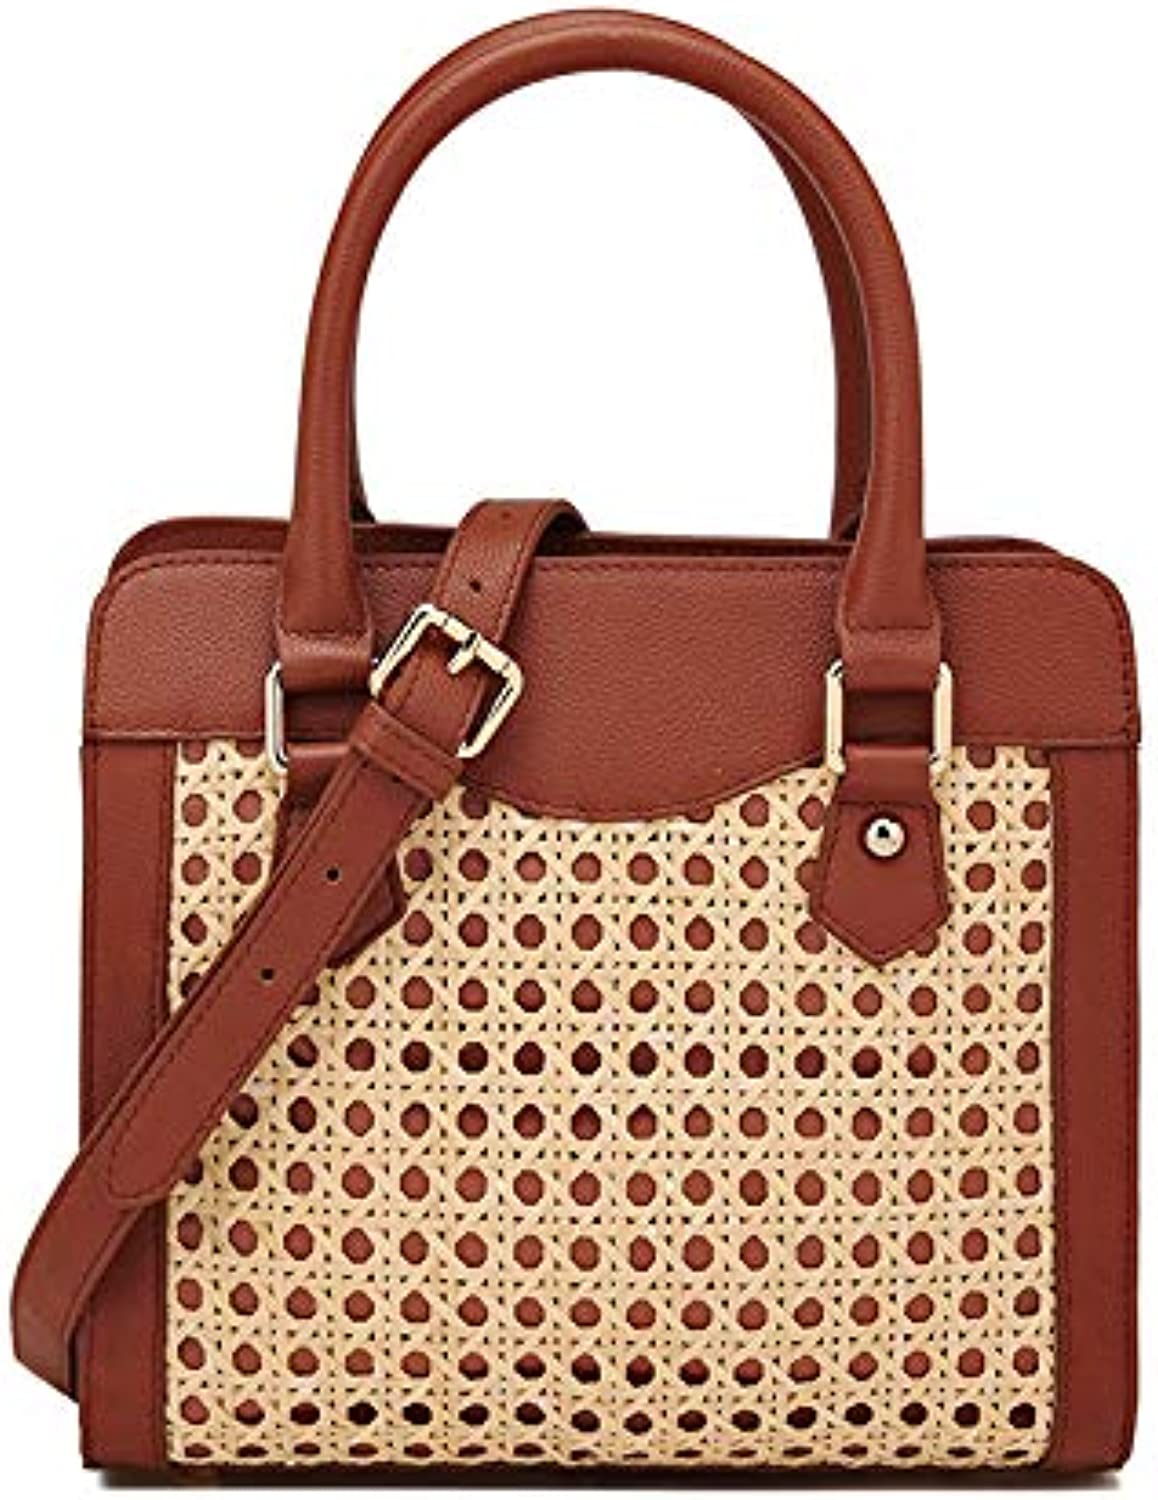 ASHIJIN Handmade Rattan Handbags Bags with Rattan Personality Fashion Fabrics. Bag New Bag